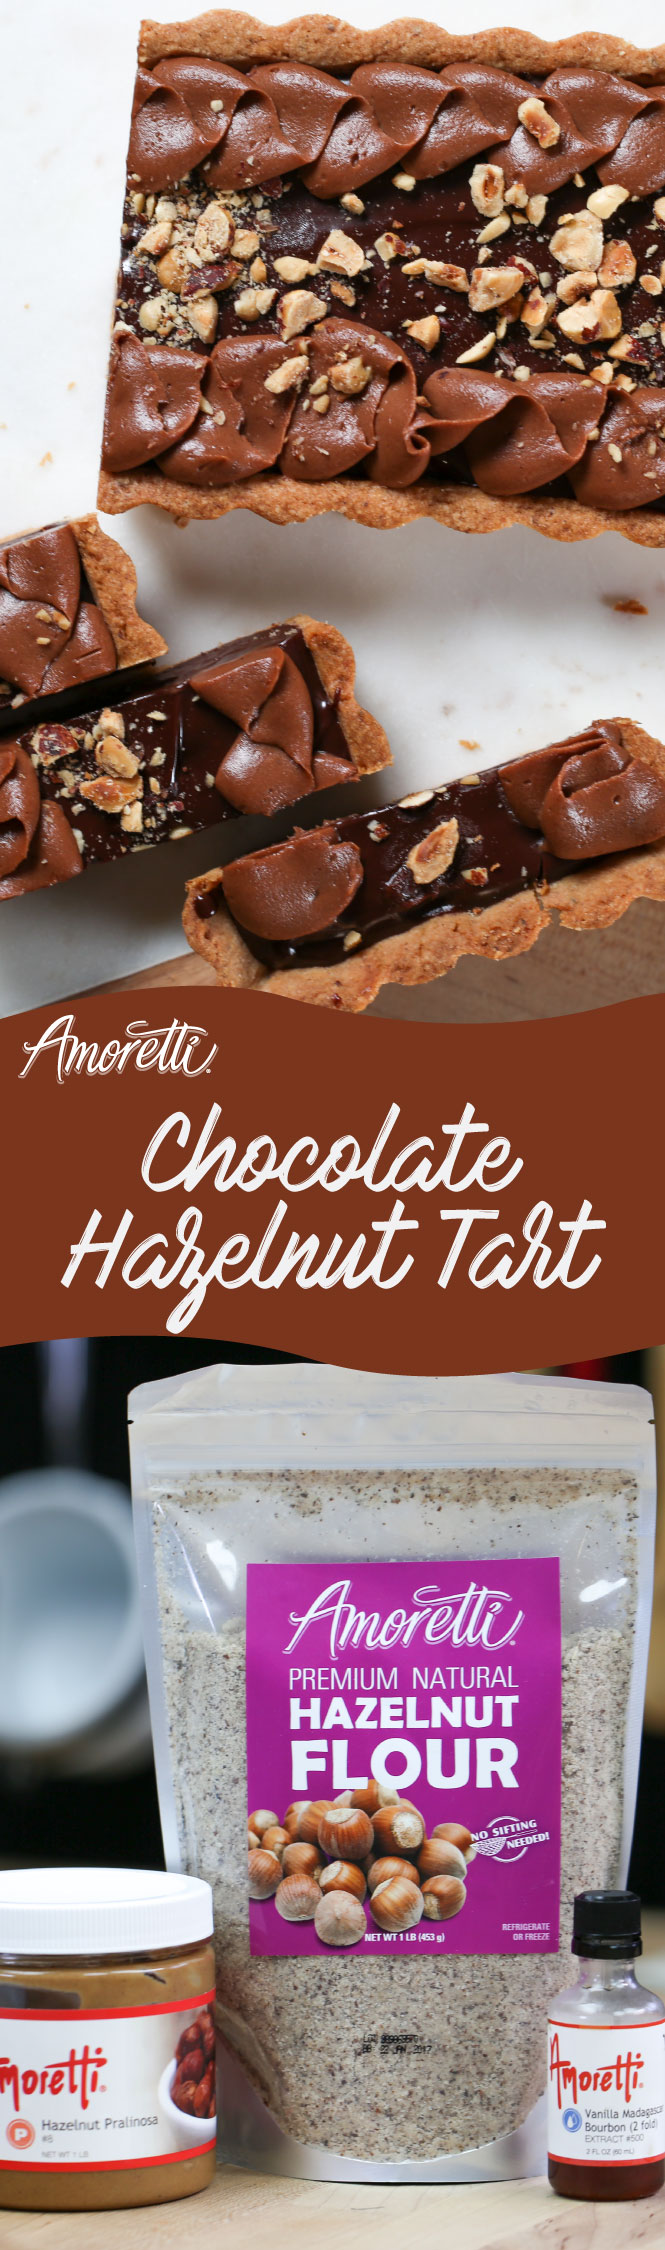 Chocolates and hazelnuts never looked so good!